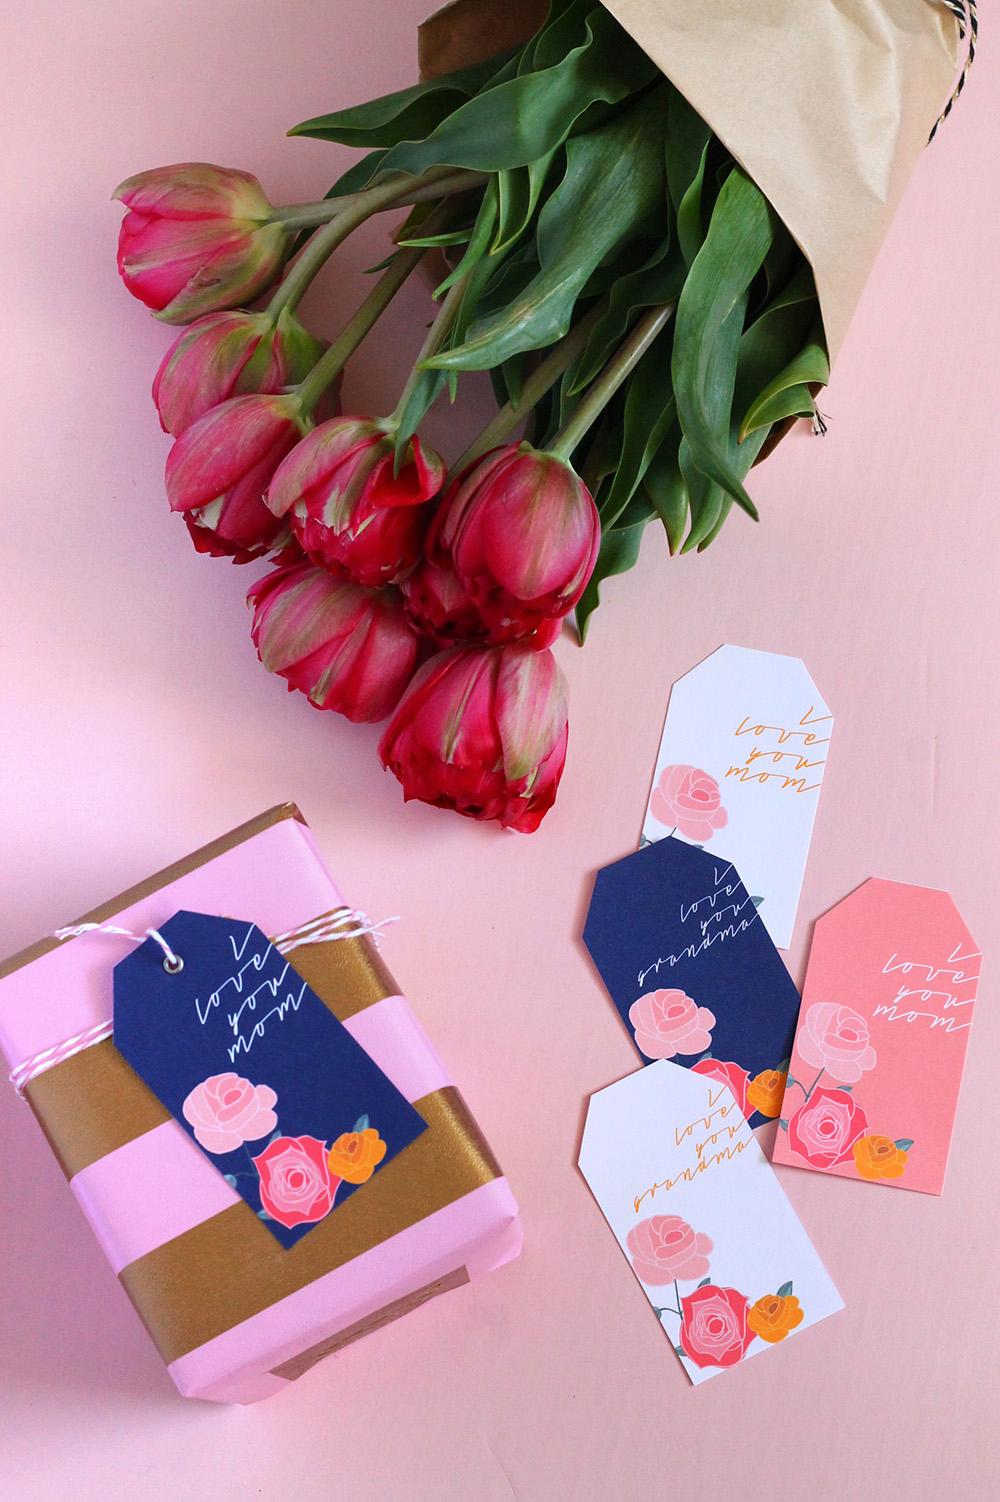 Top 20 Mother's Day Projects - Printable Gift Tags from Squirrelly Minds | Squirrelly Minds